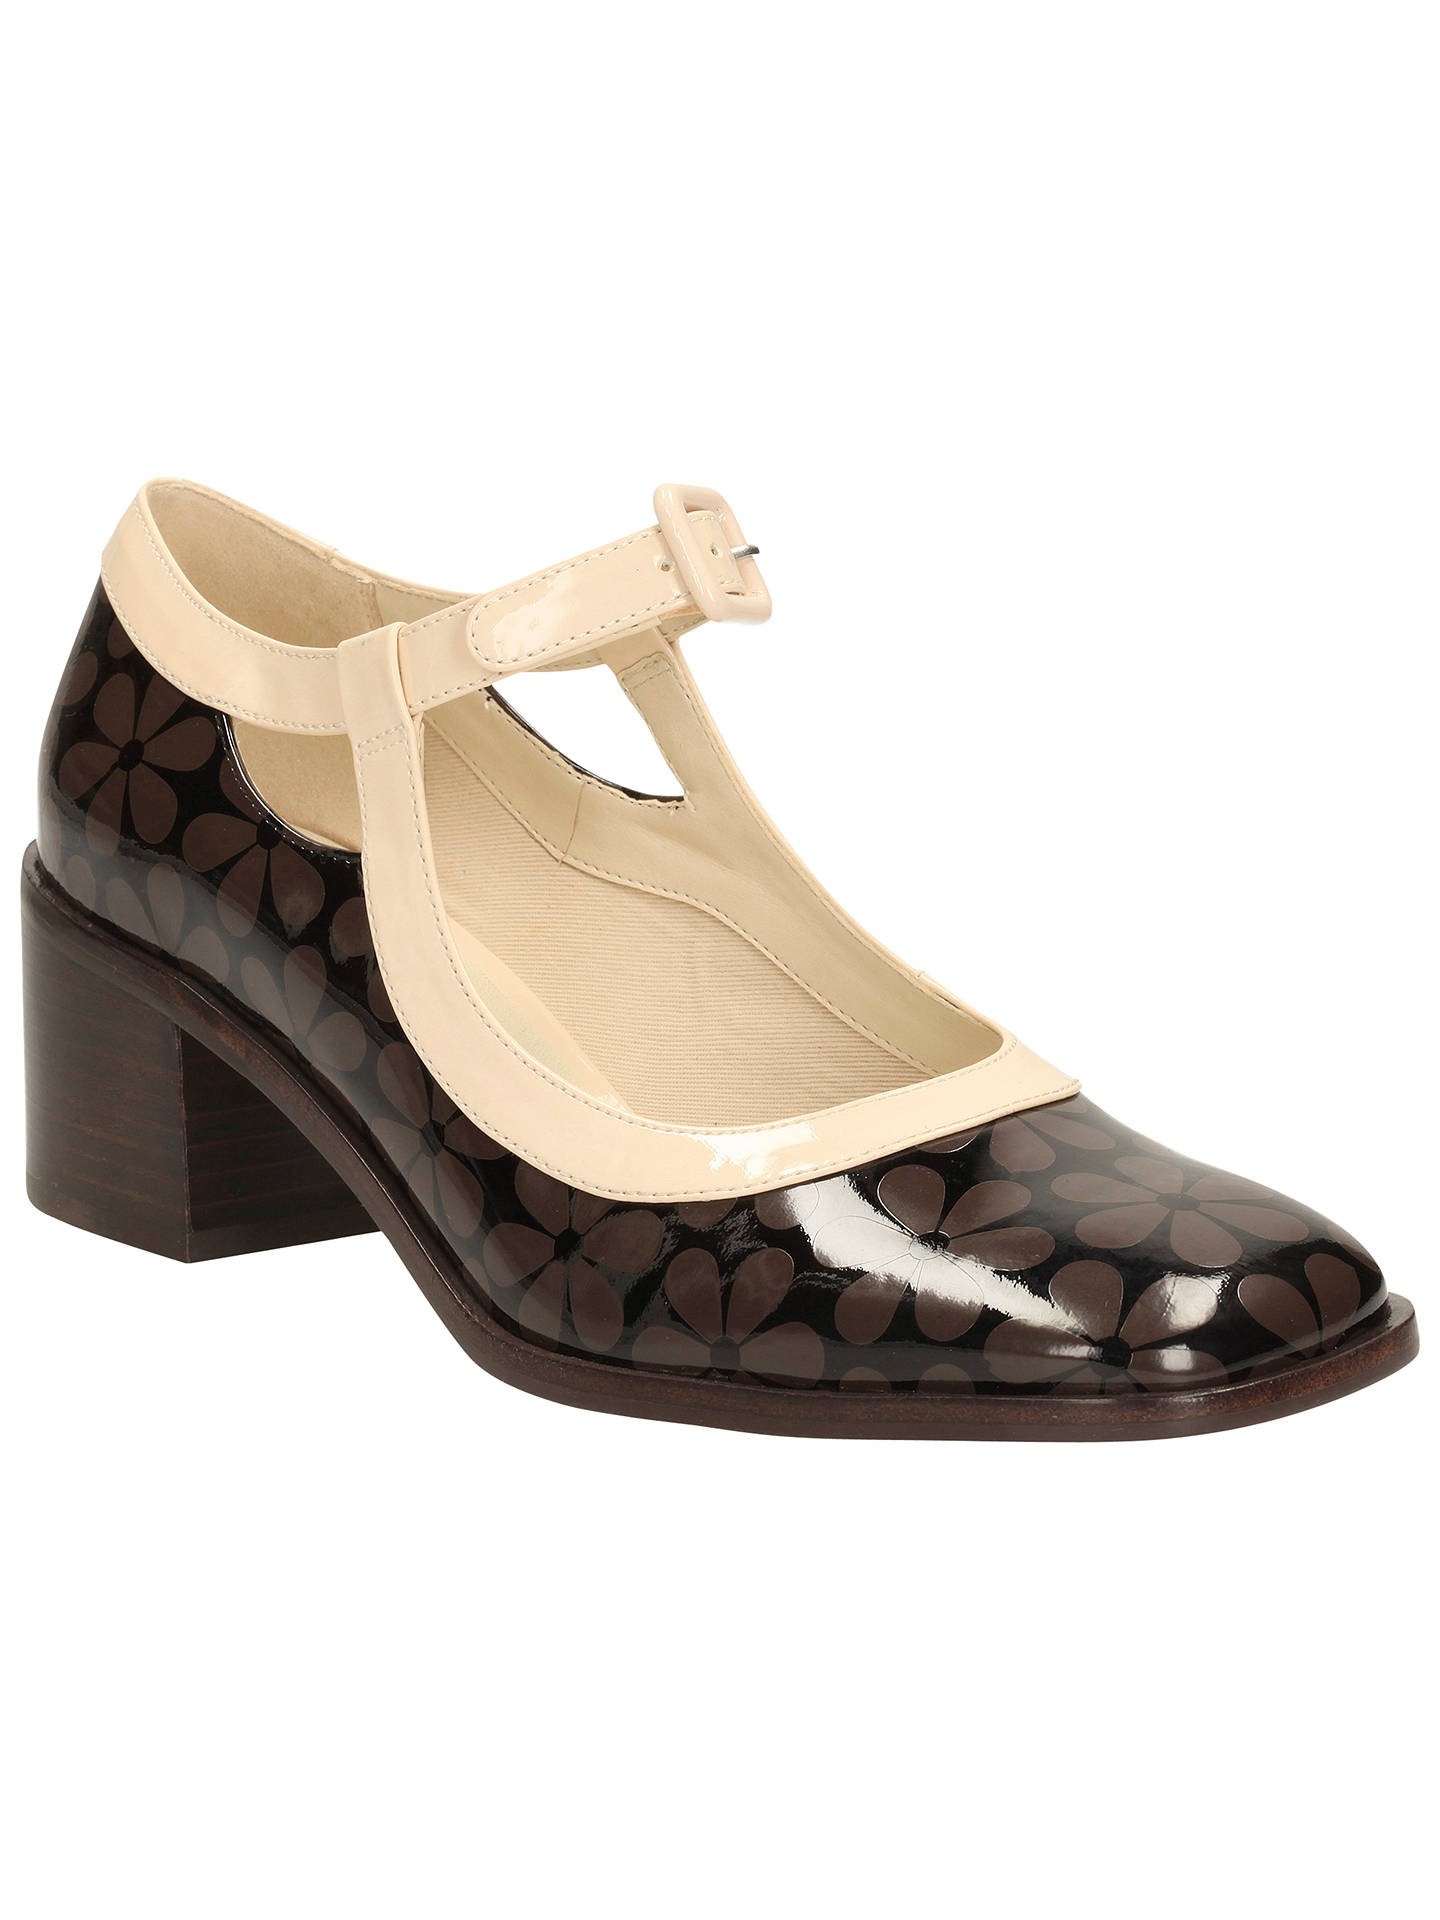 458bcd691feb Clarks Orla Kiely Amelia Leather Court Shoes at John Lewis   Partners